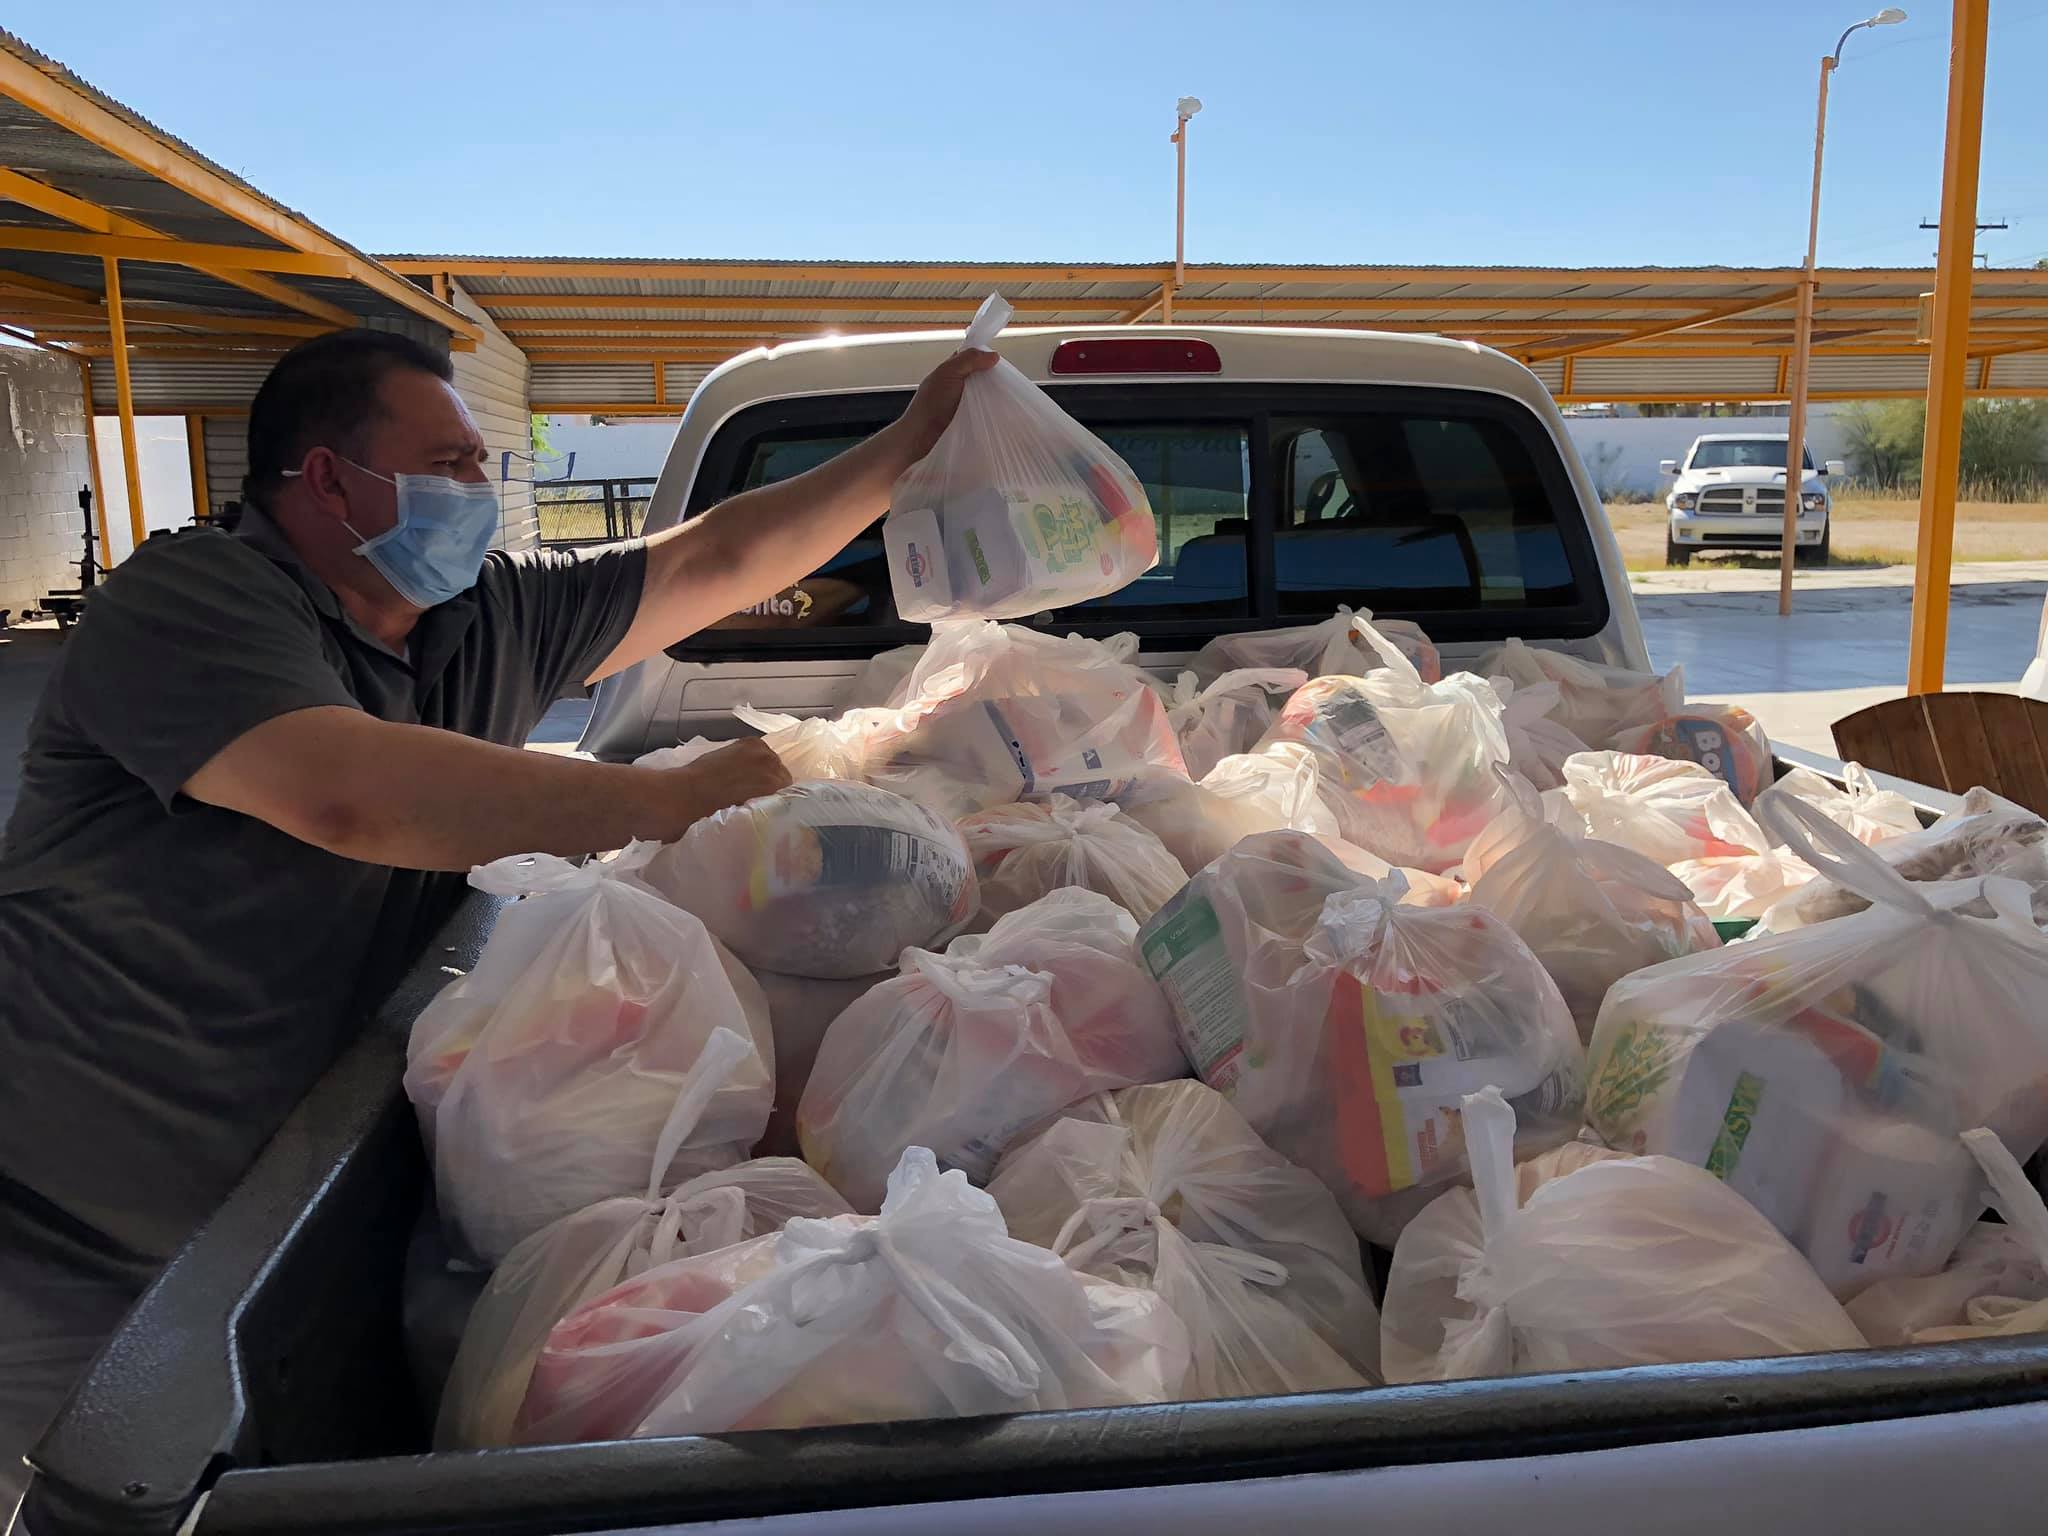 During this crisis, so many young people in the community were reminded of the kindness of others when their families received emergency food support. Today, they are depending on this continued kindness and generosity to be able to stay in school.